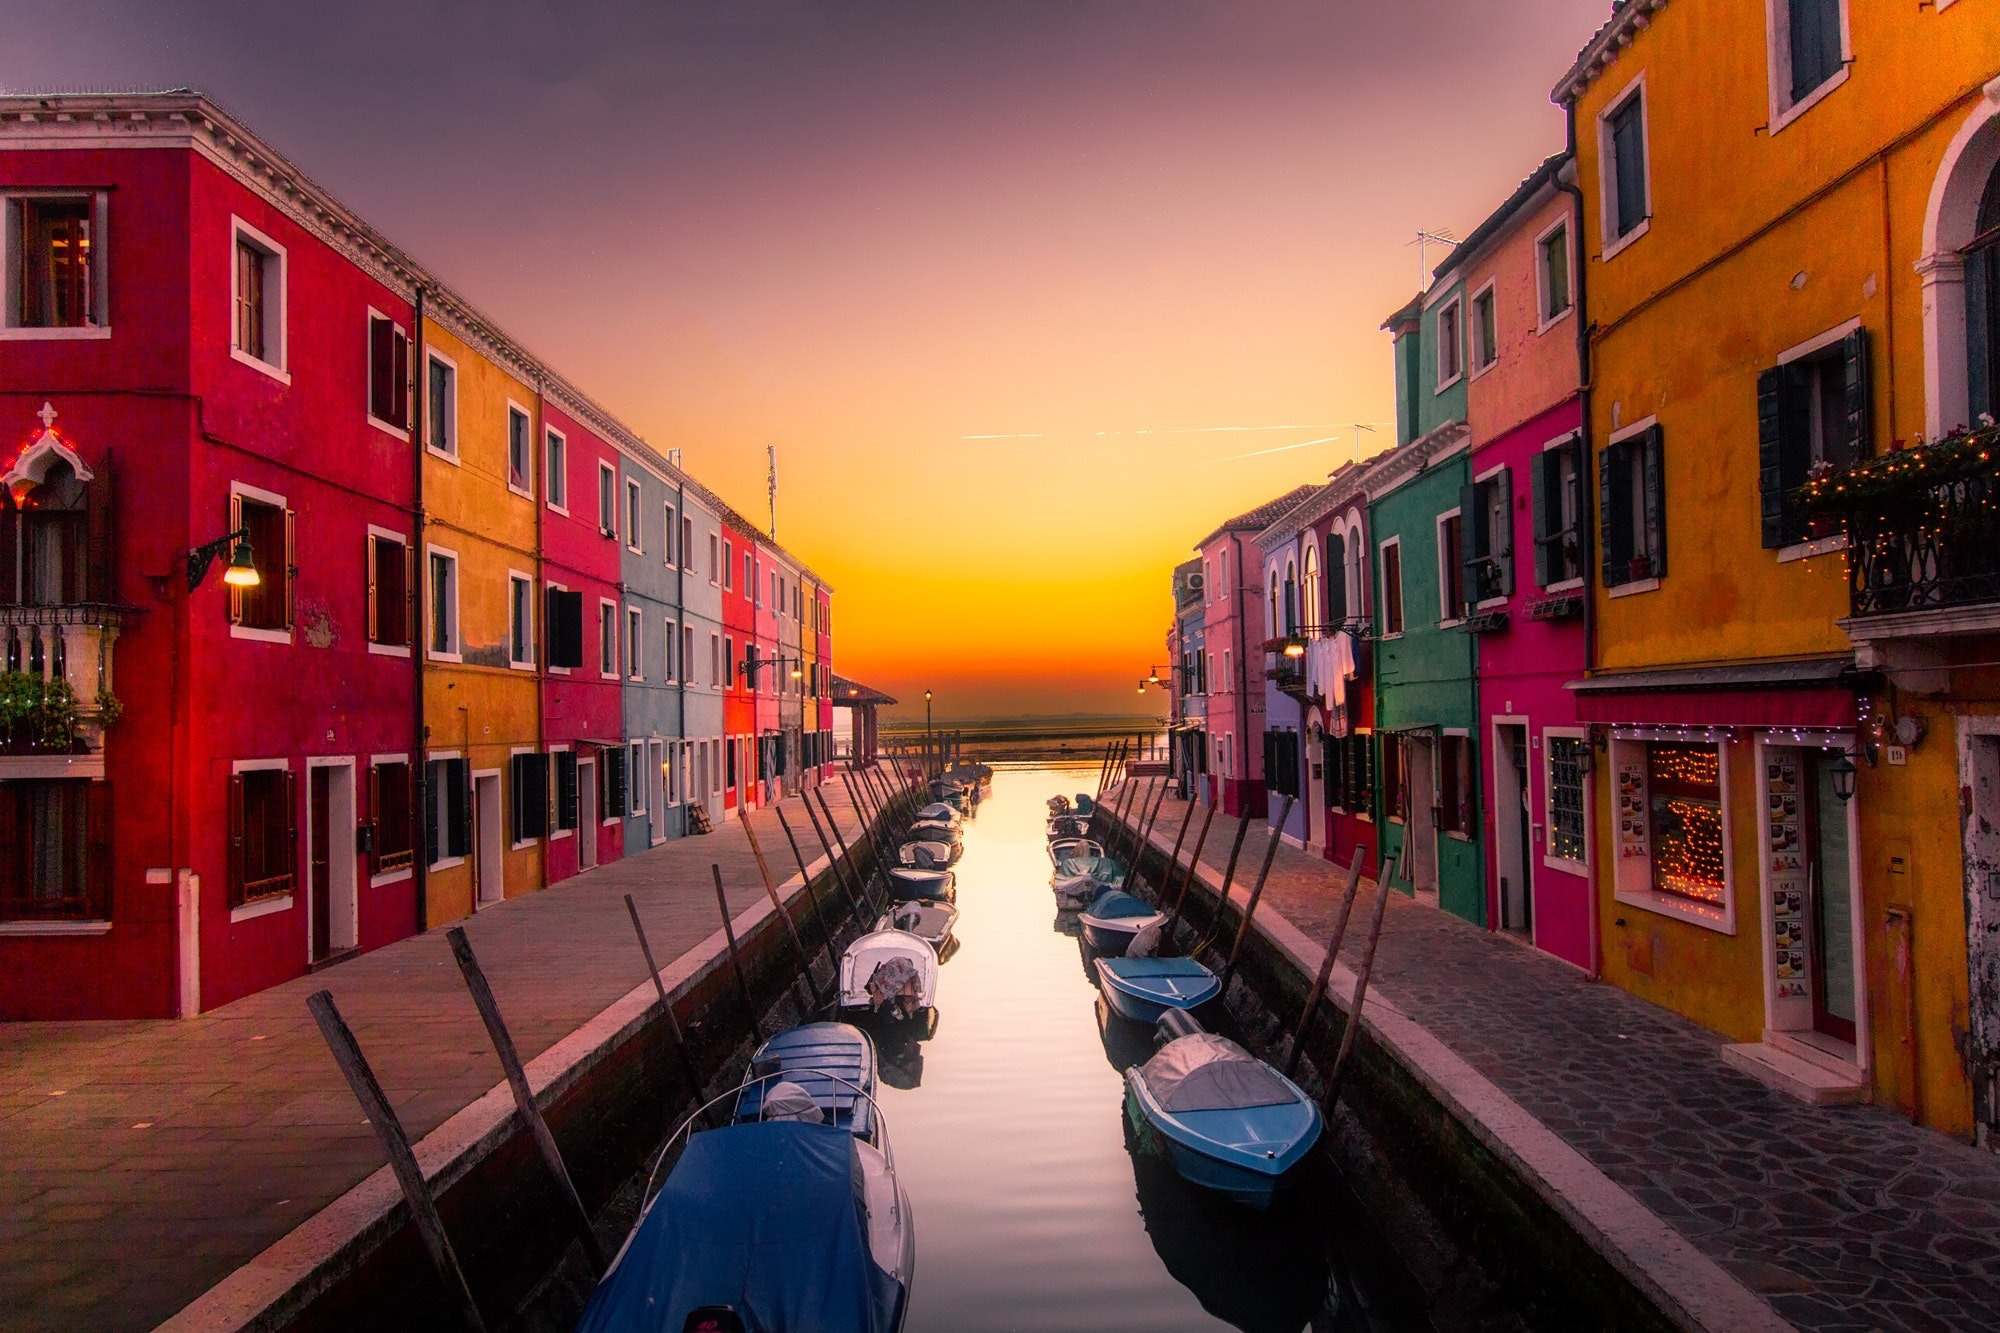 An image of a canal in Europe, a destination many love to travel on their gap years